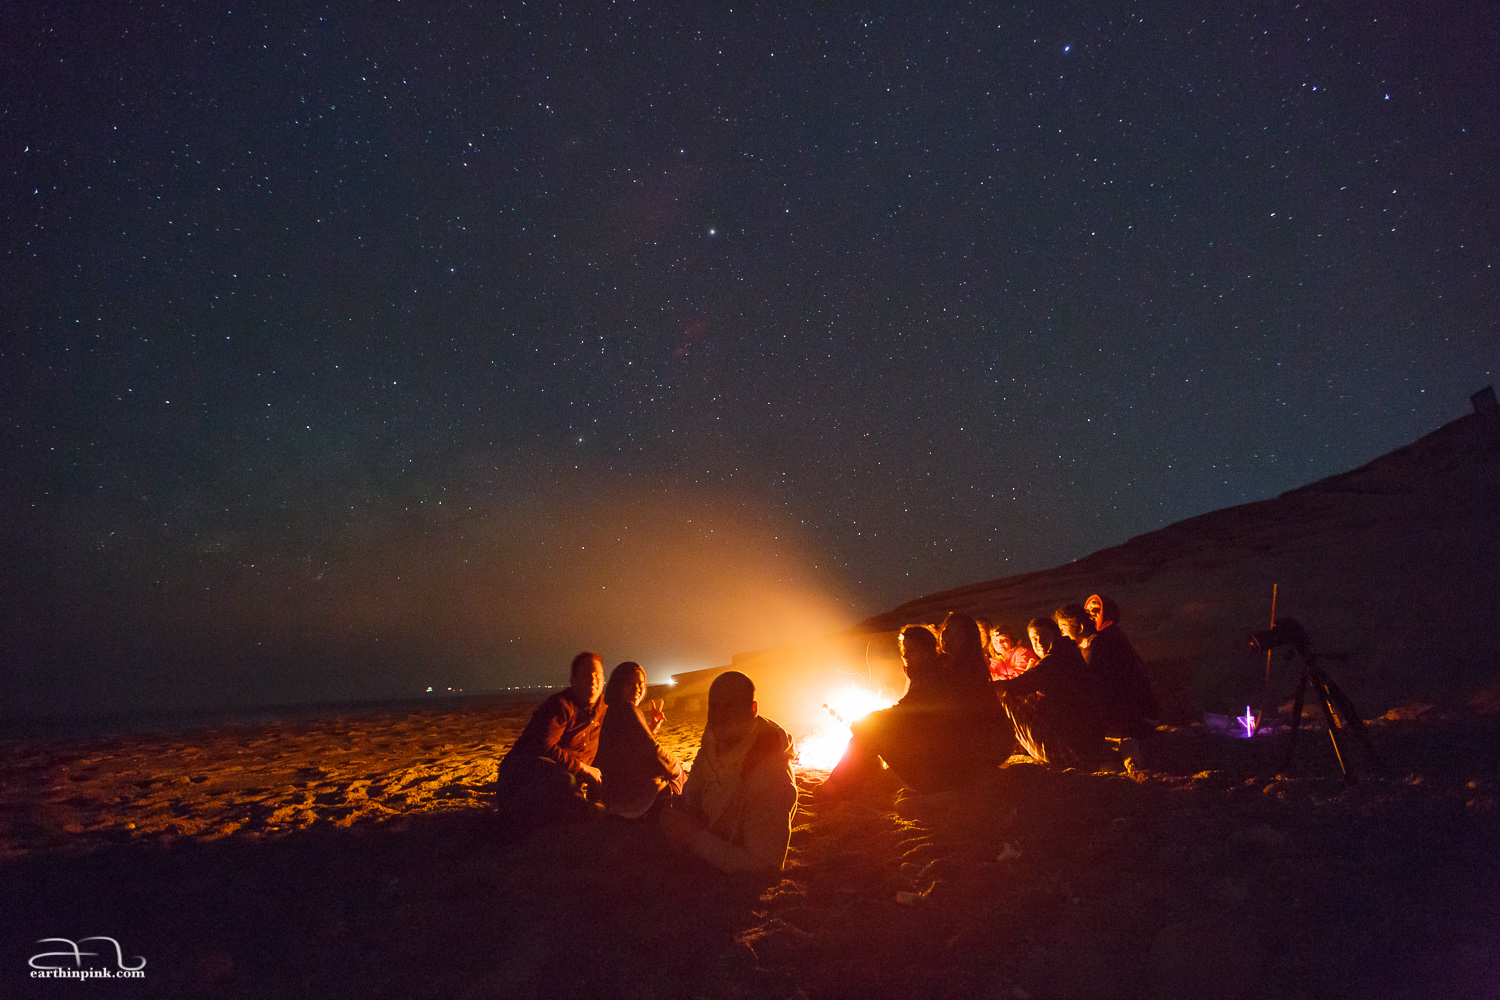 Our group from the Tokyo Snow Club enjoying the approach of summer with a bonfire under the starry sky.